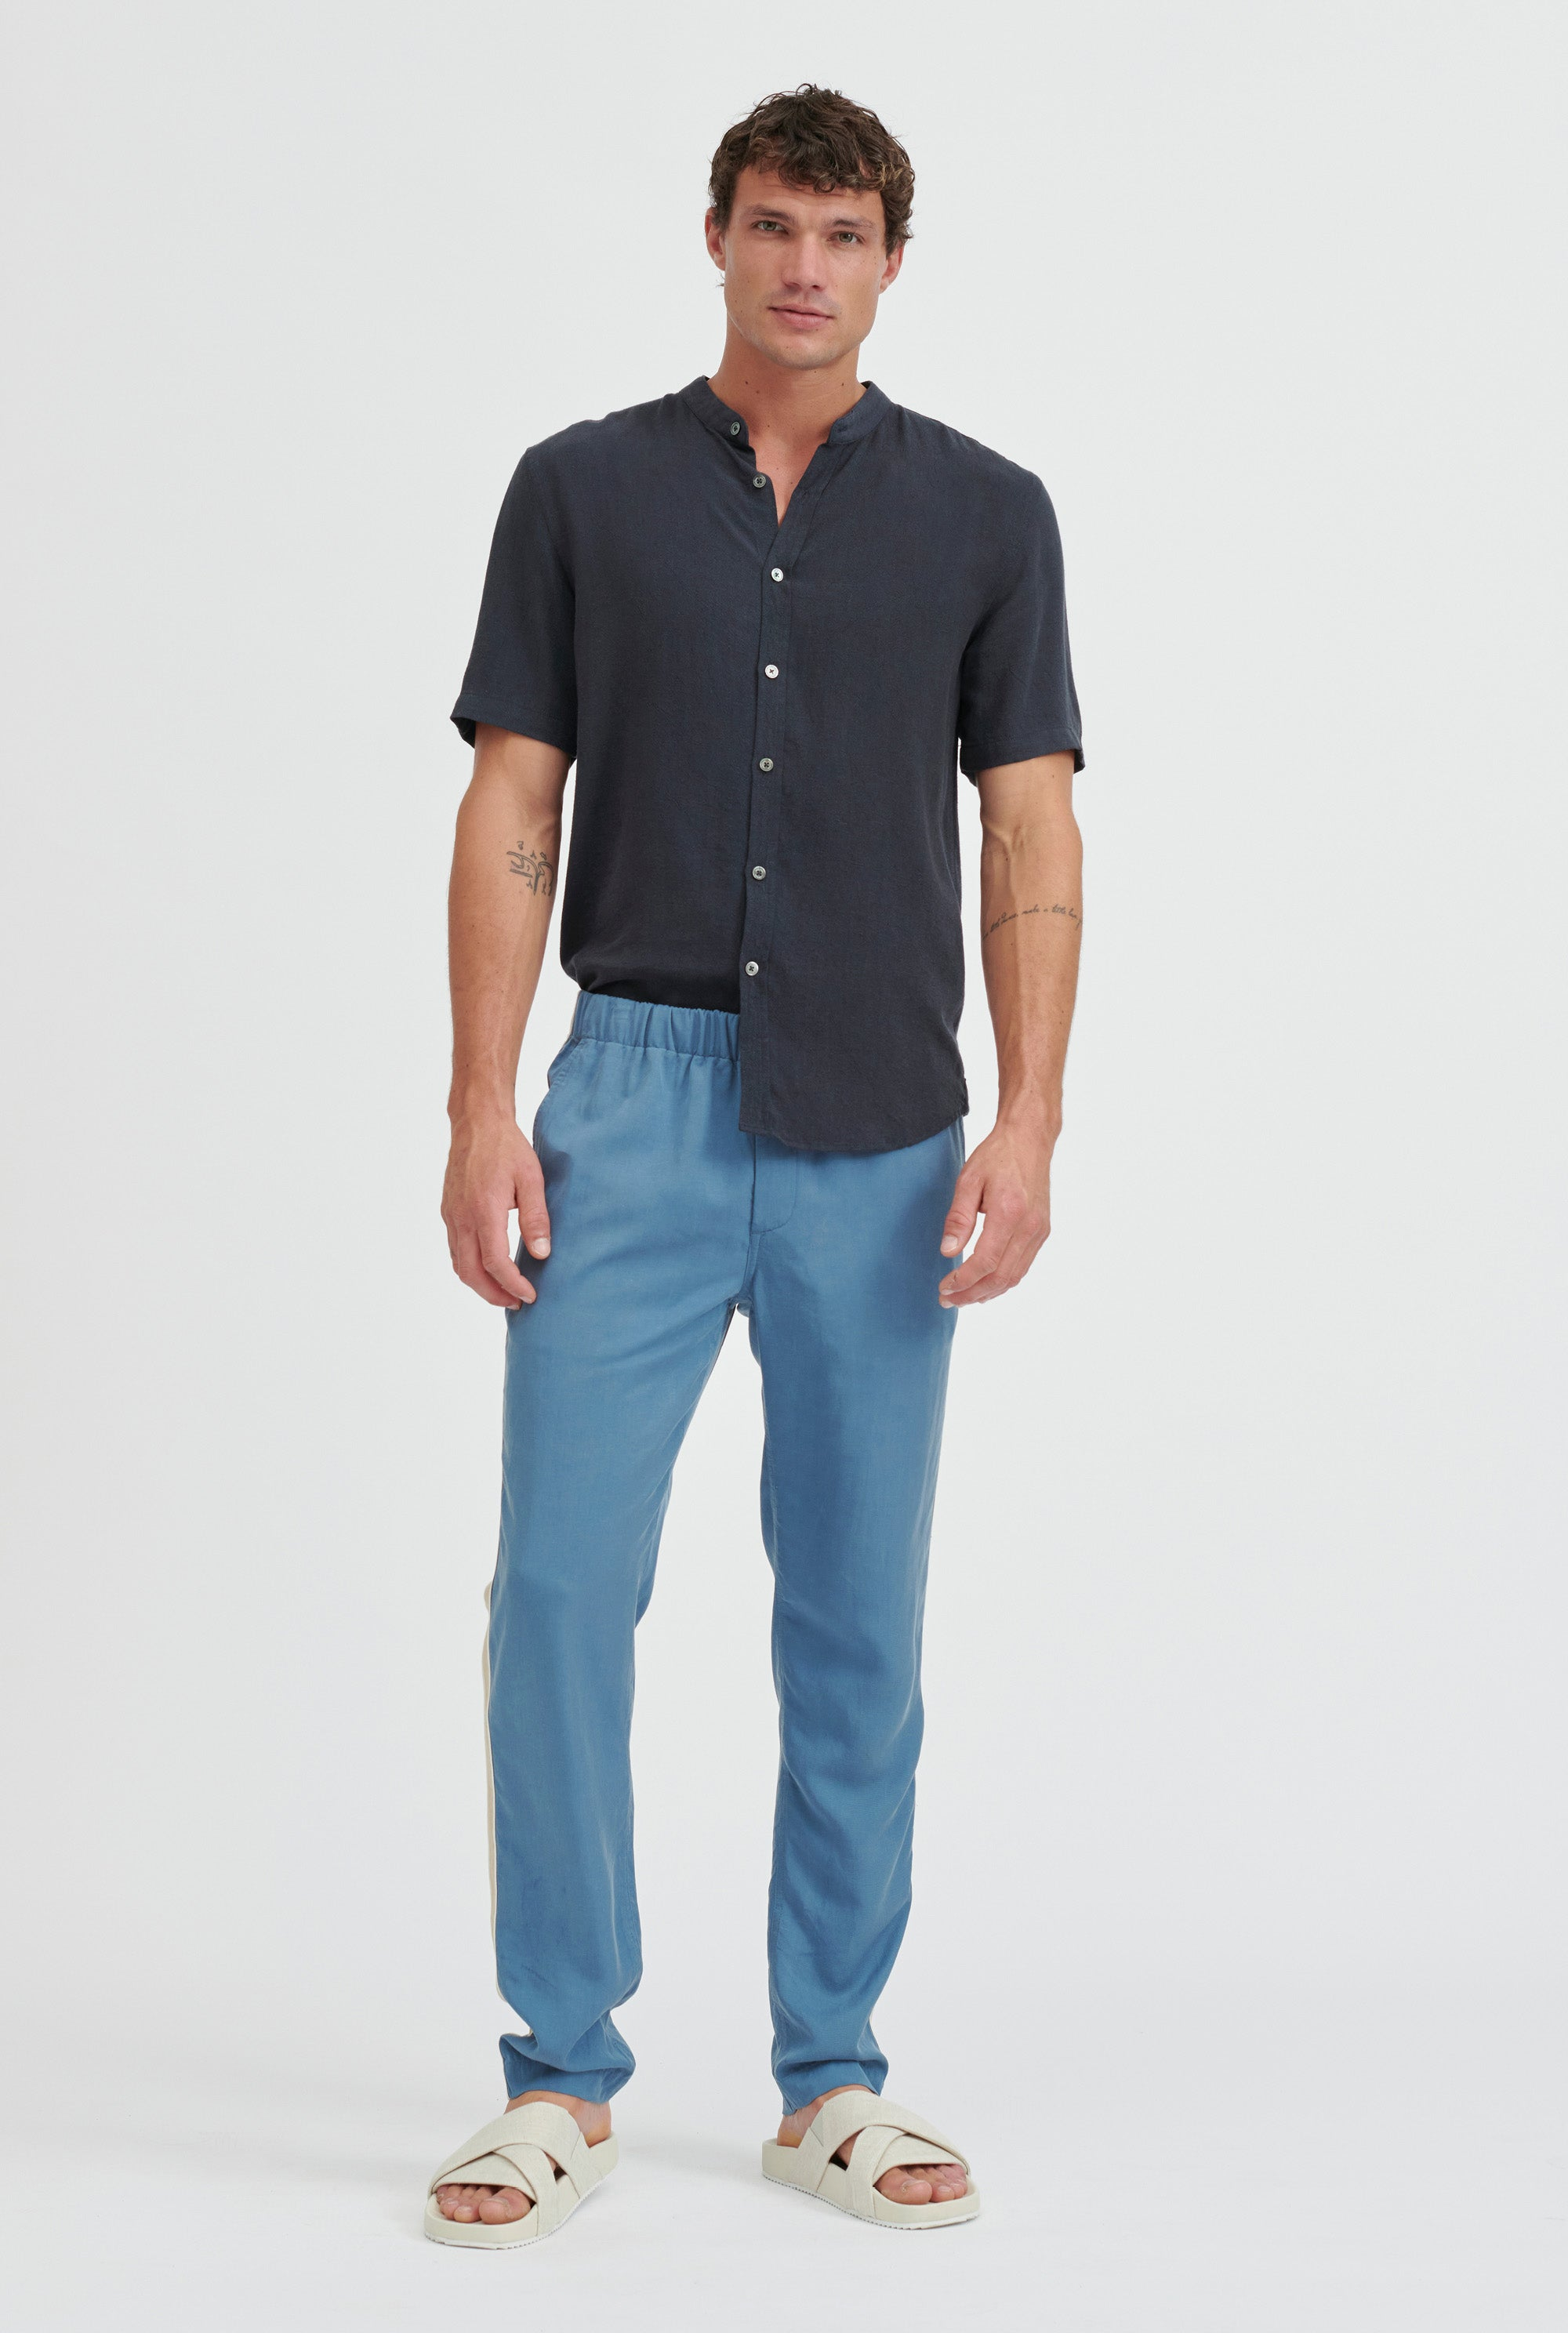 Tencel Lounge Chino - Ocean Blue/Summer Tape